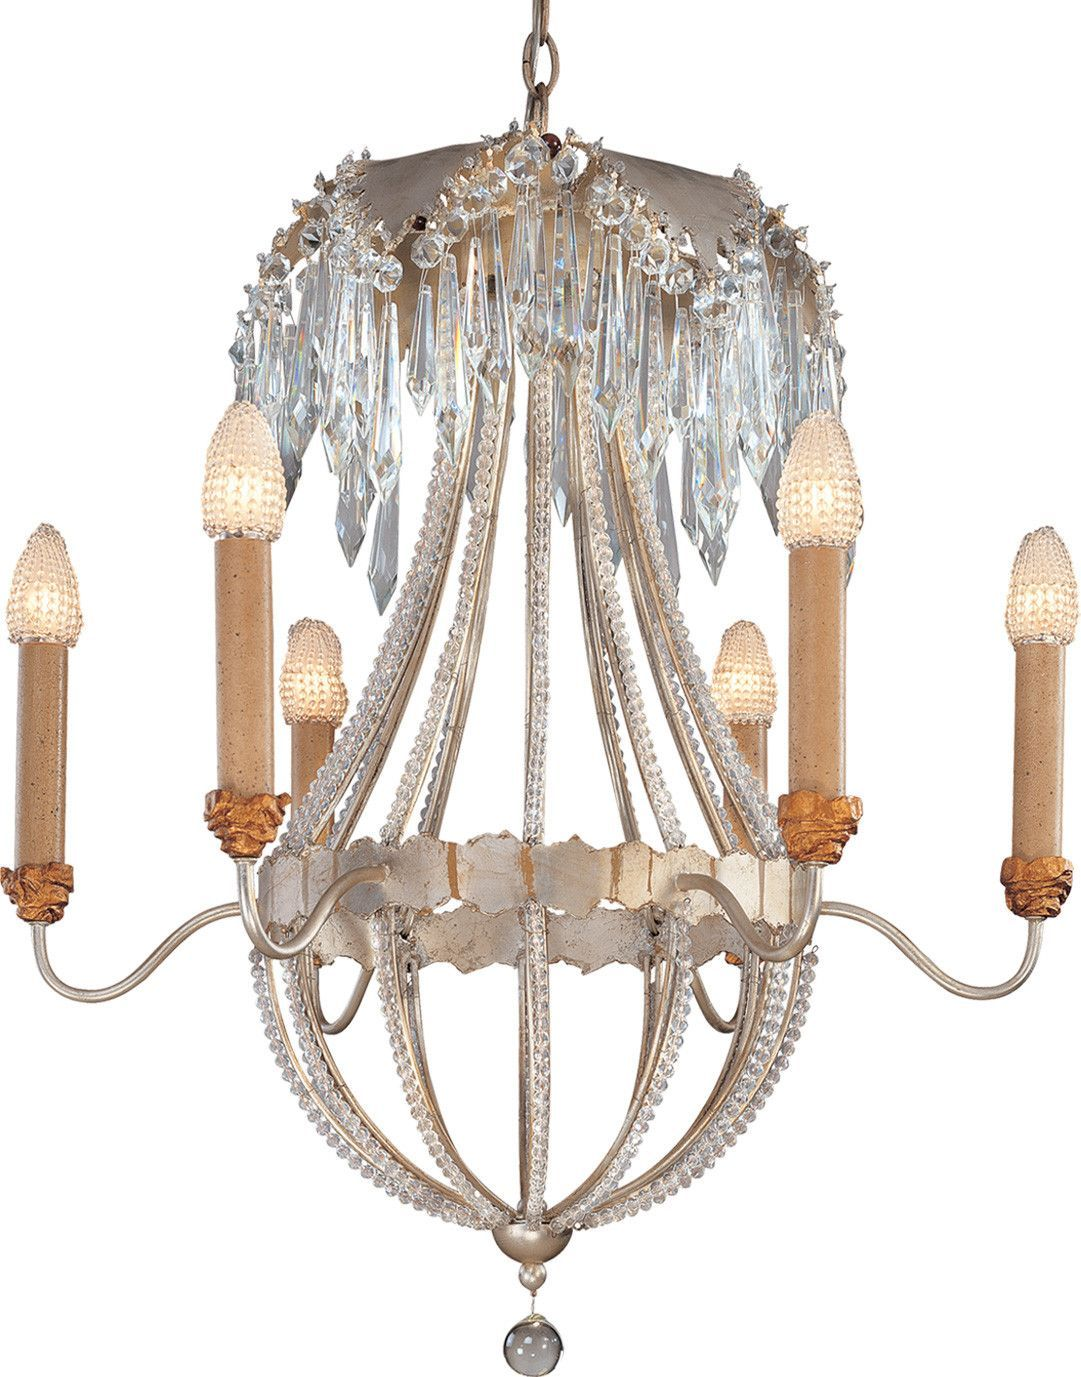 6 arm chandelier chandeliers french cottage and bulbs 6 arm chandelier arubaitofo Image collections